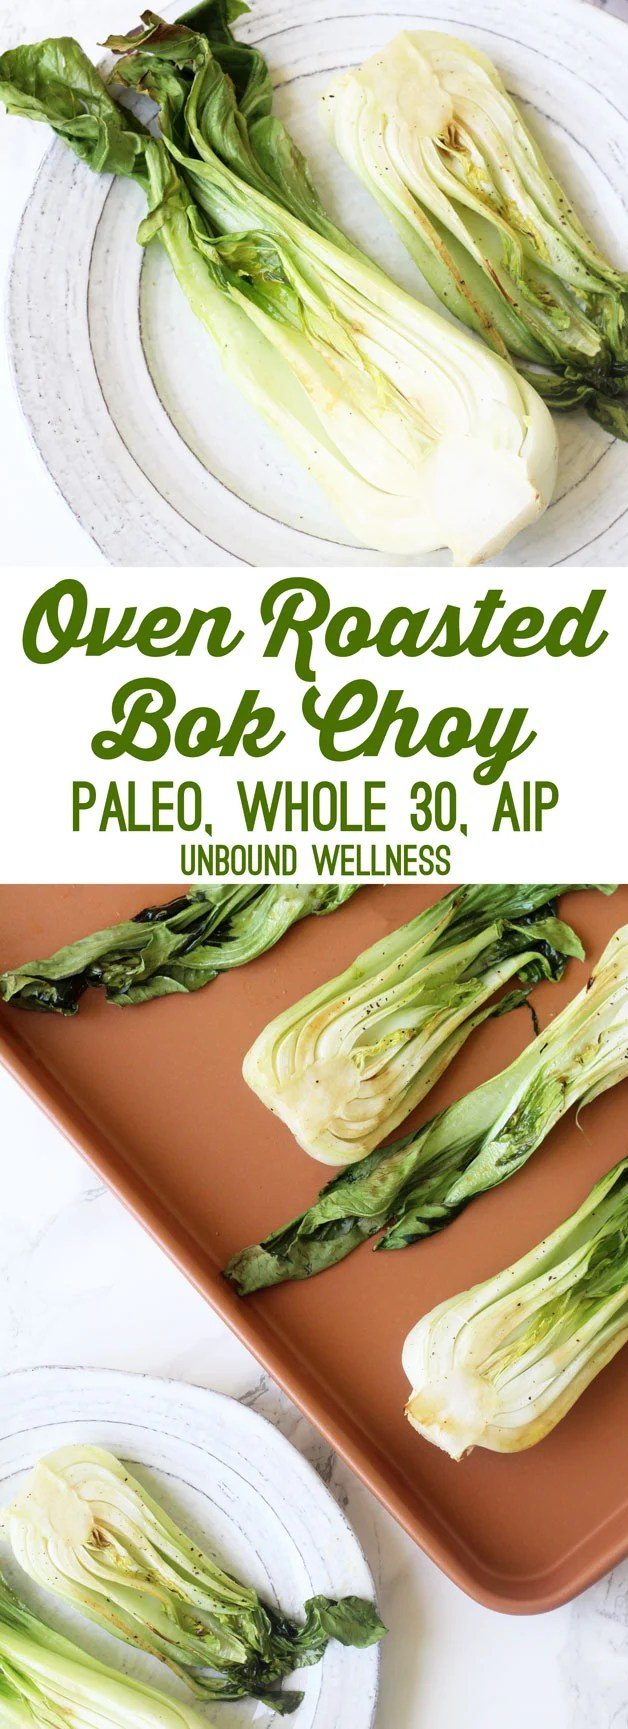 Oven Roasted Baby Bok Choy (Paleo, Whole 30, AIP)